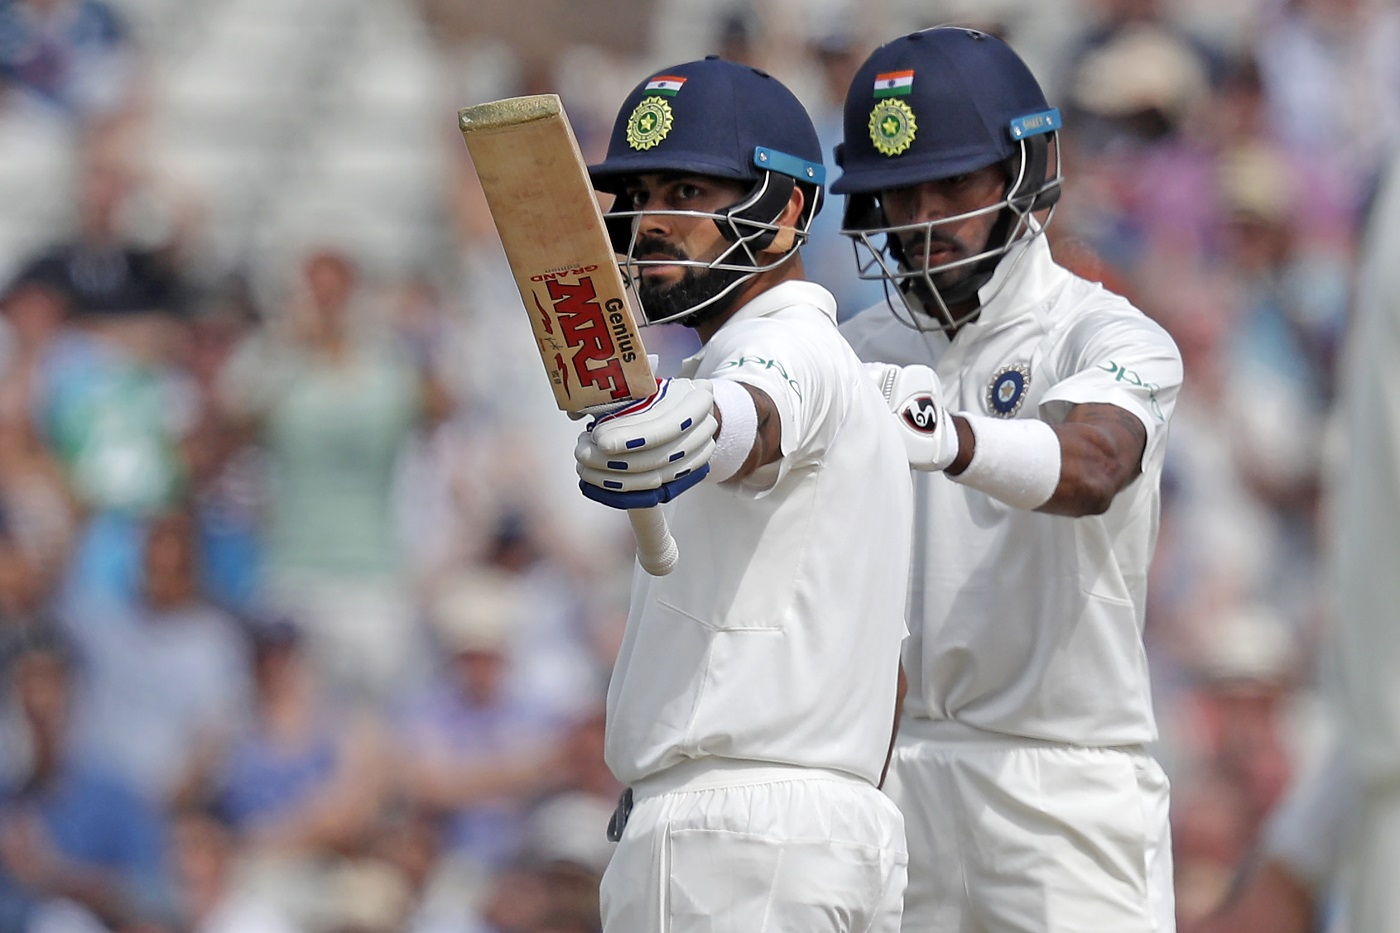 ENG vs IND 2018: Virat Kohli Becomes Indian Player With Most 200-Plus Runs In A Test Match